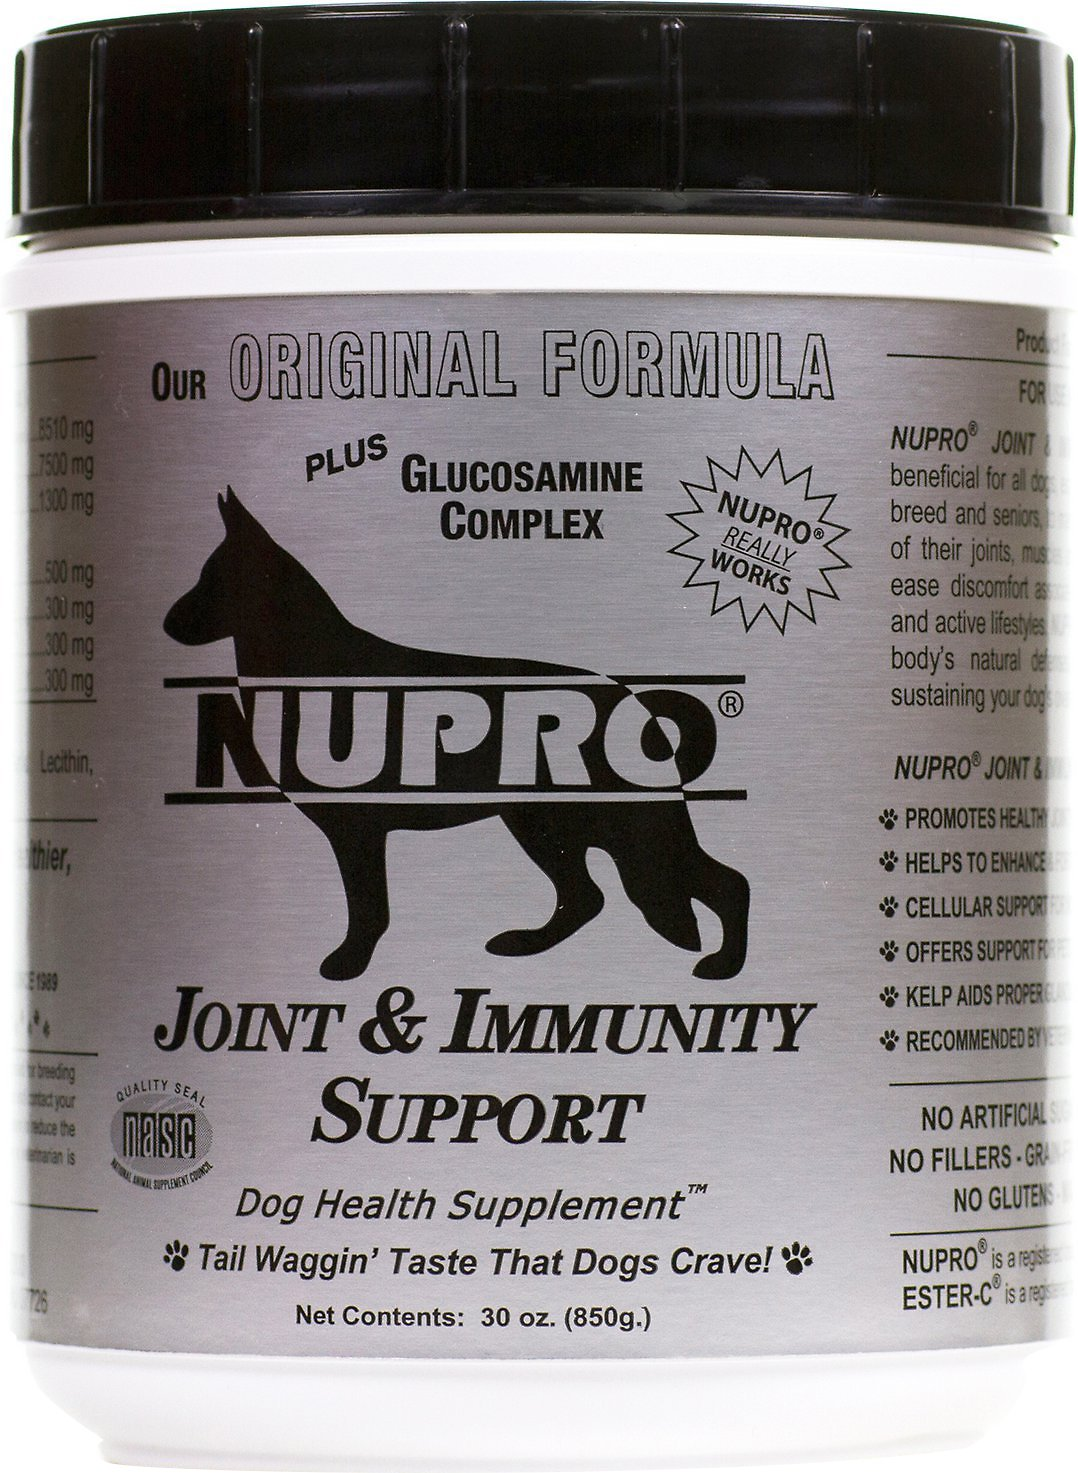 Nupro All Natural Joint & Immunity Support Dog Supplement Image